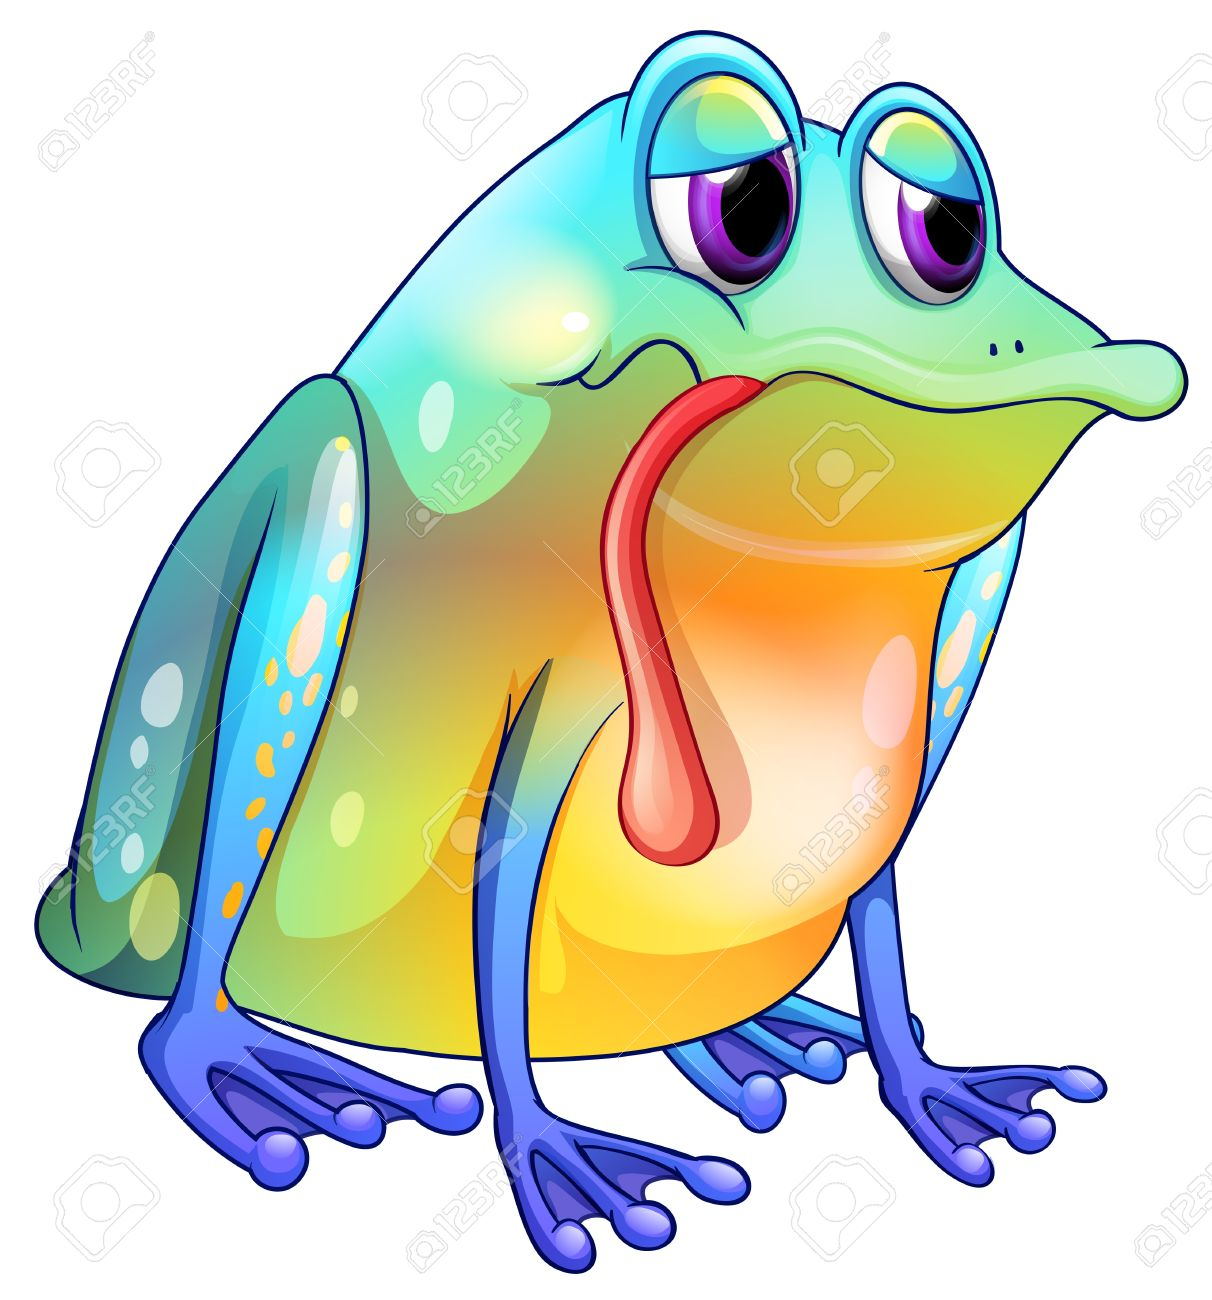 hight resolution of illustration of a colorful sad frog on a white background royalty